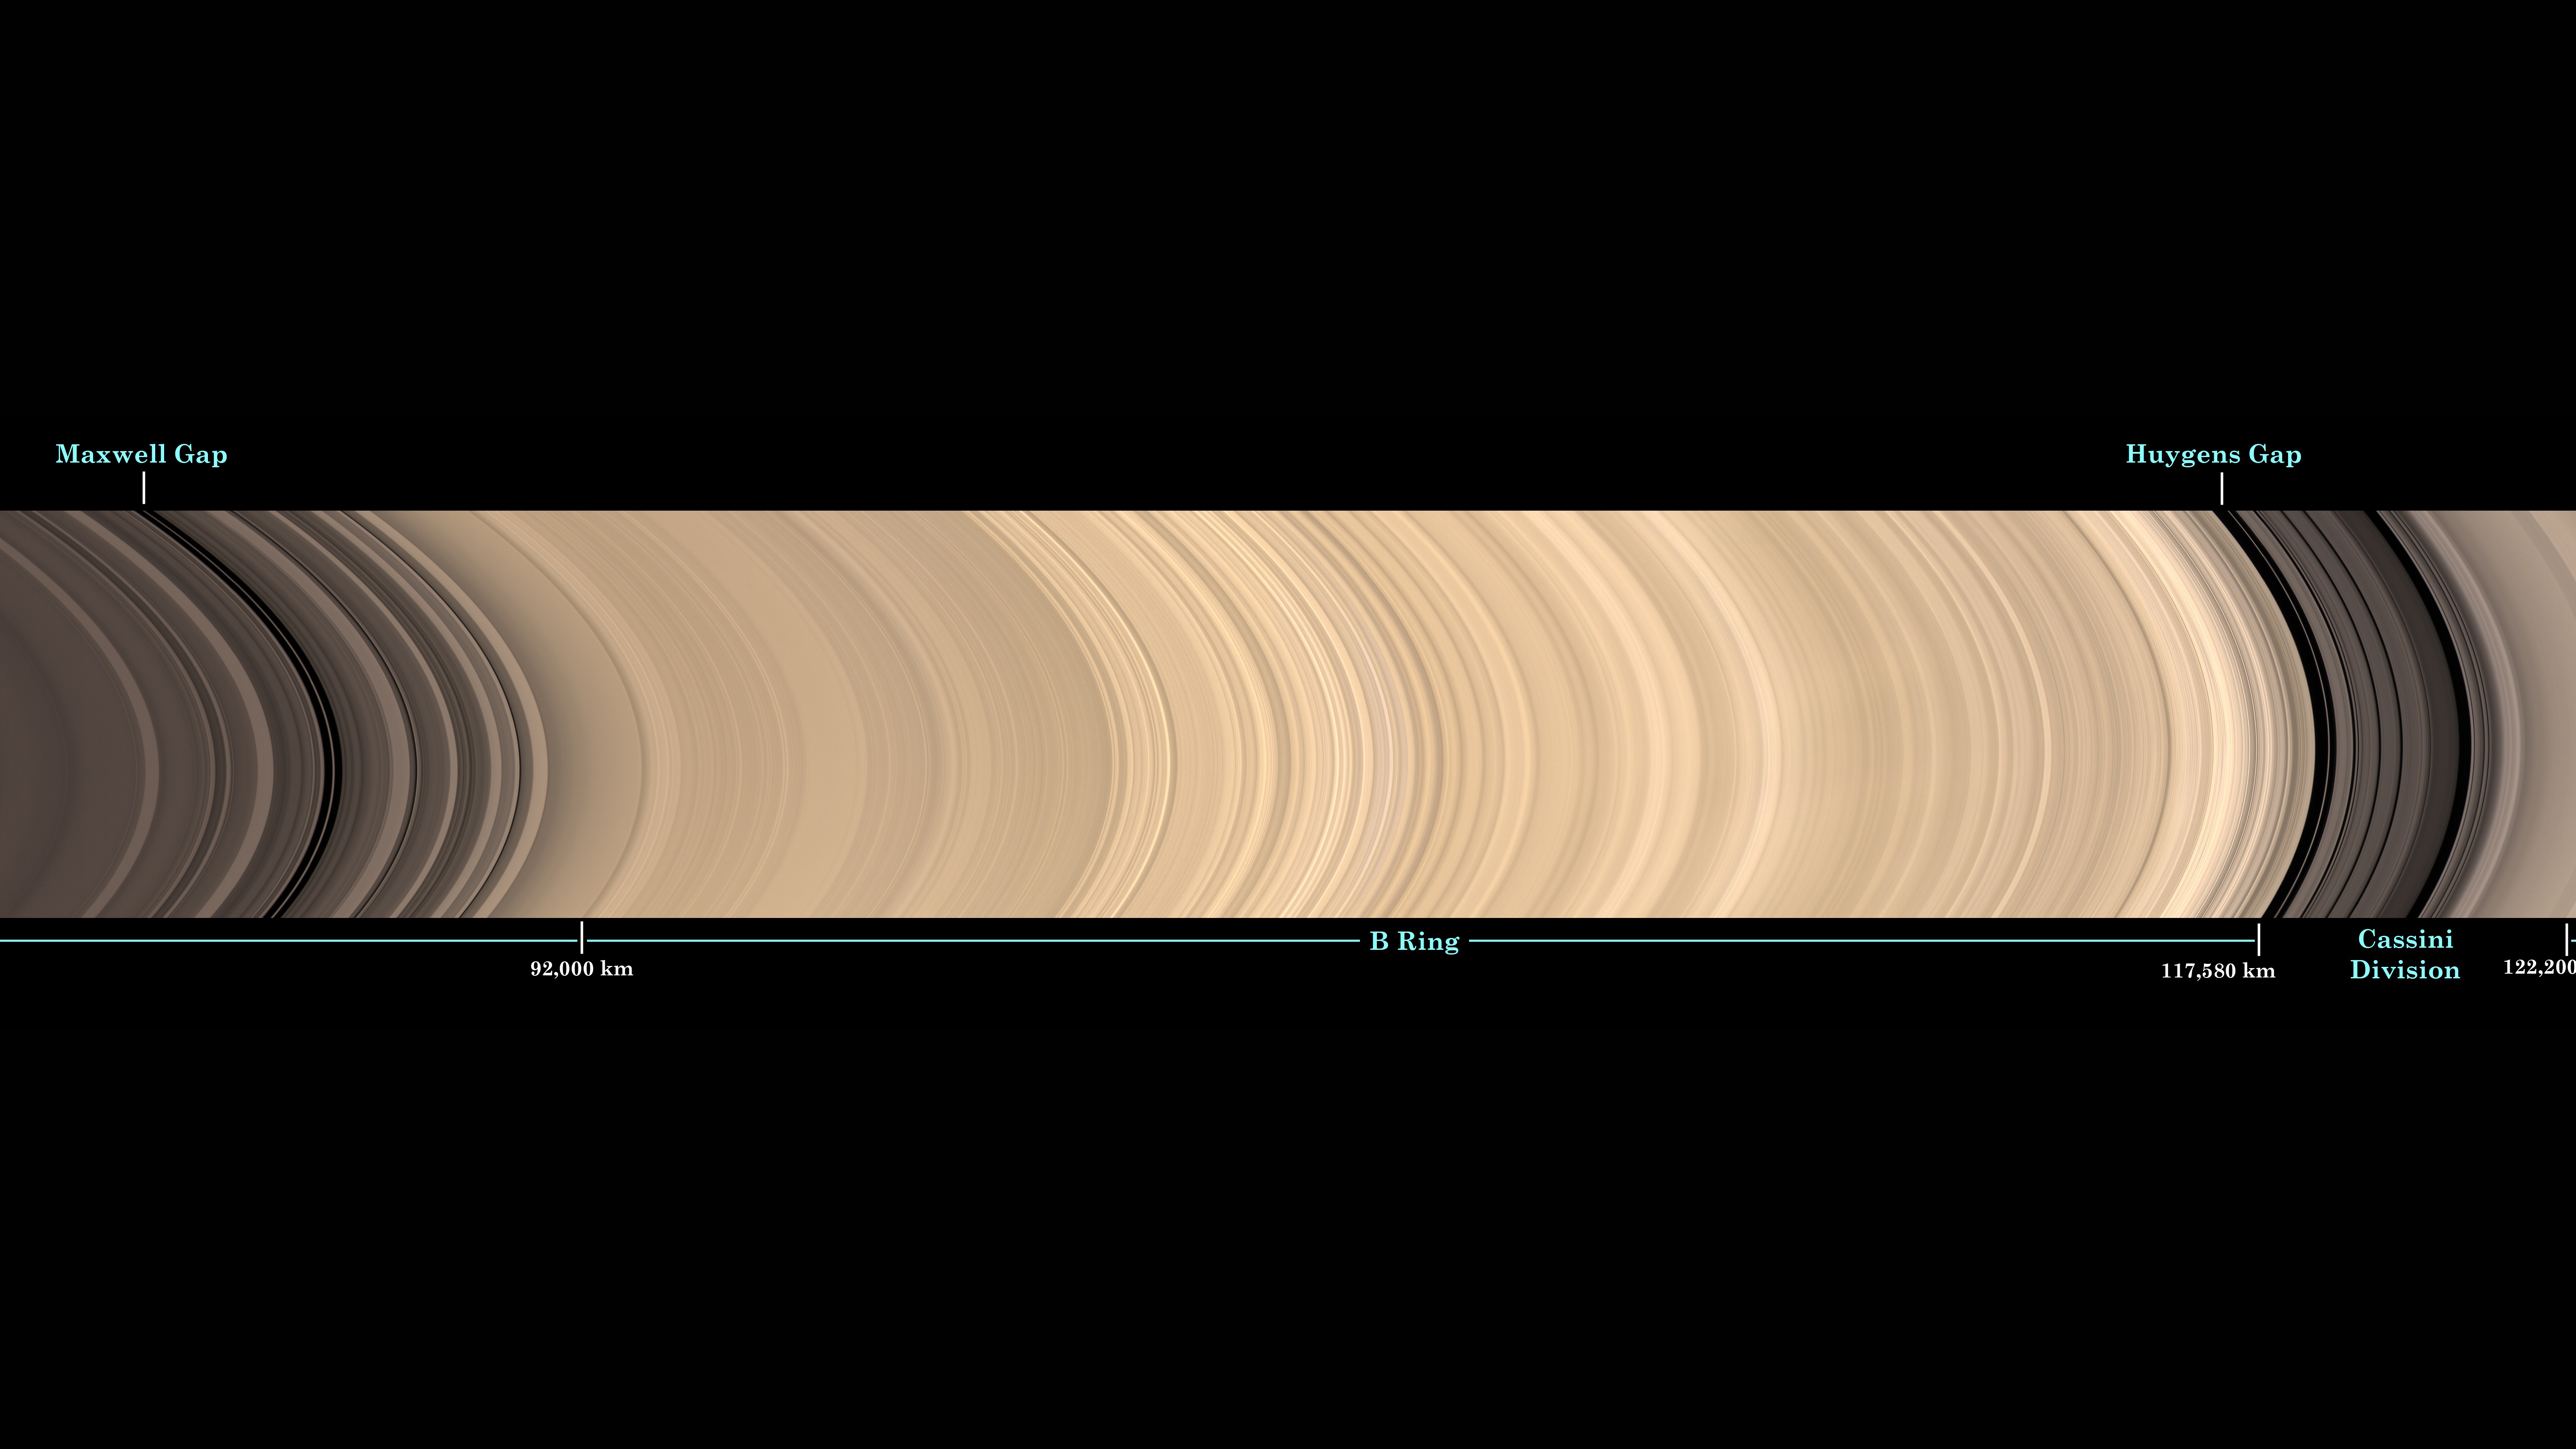 Of planet earth as a point of light between the icy rings of saturn - This Image Is Cropped From A Panoramic View Of Saturn S Main Ring System